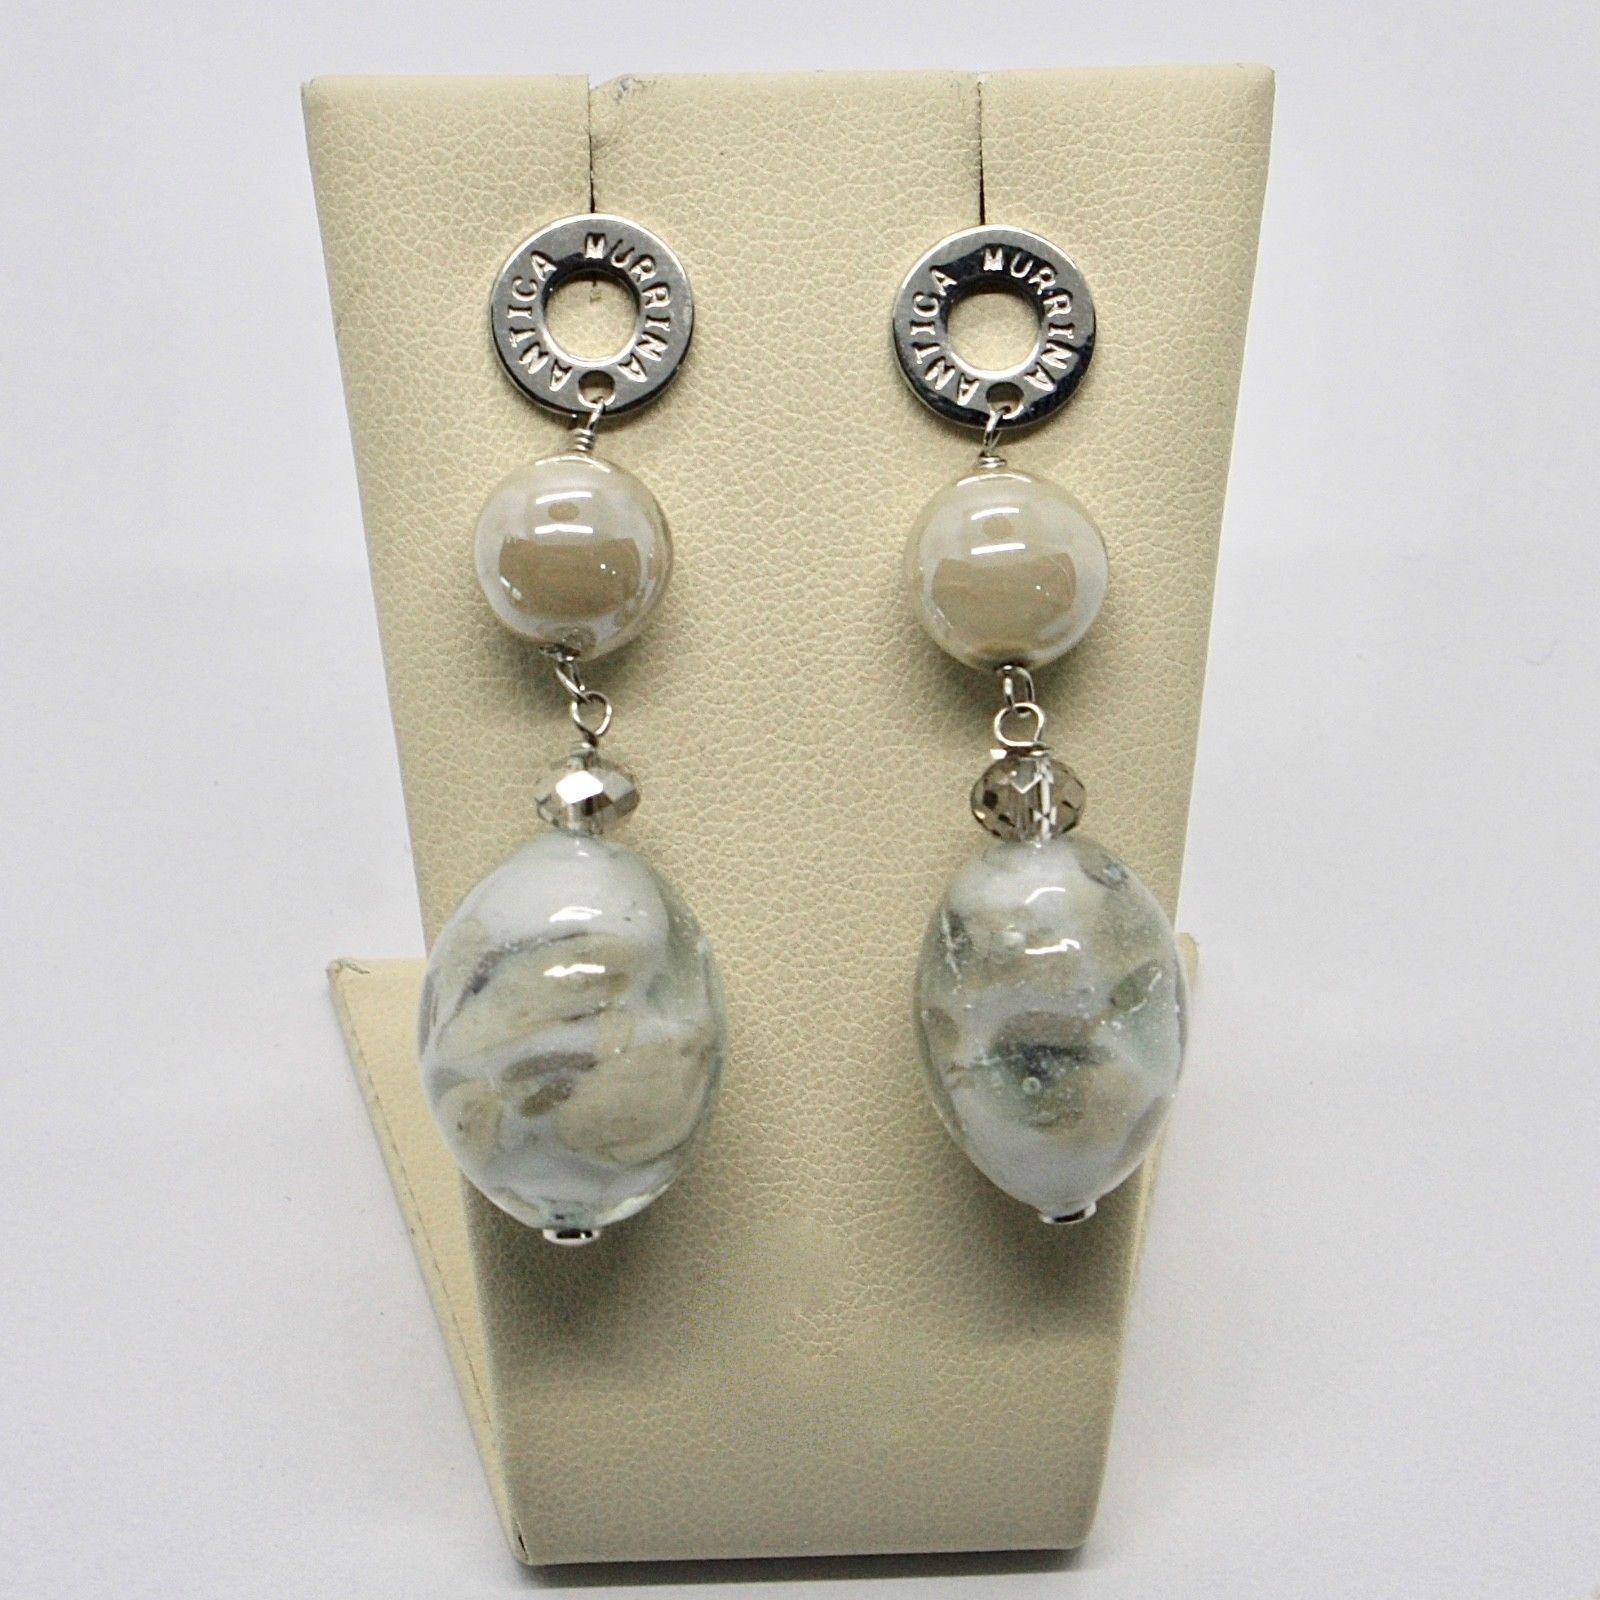 ANTICA MURRINA VENEZIA EARRINGS WITH MURANO GLASS GRAY BEIGE SILVER  OR583A34